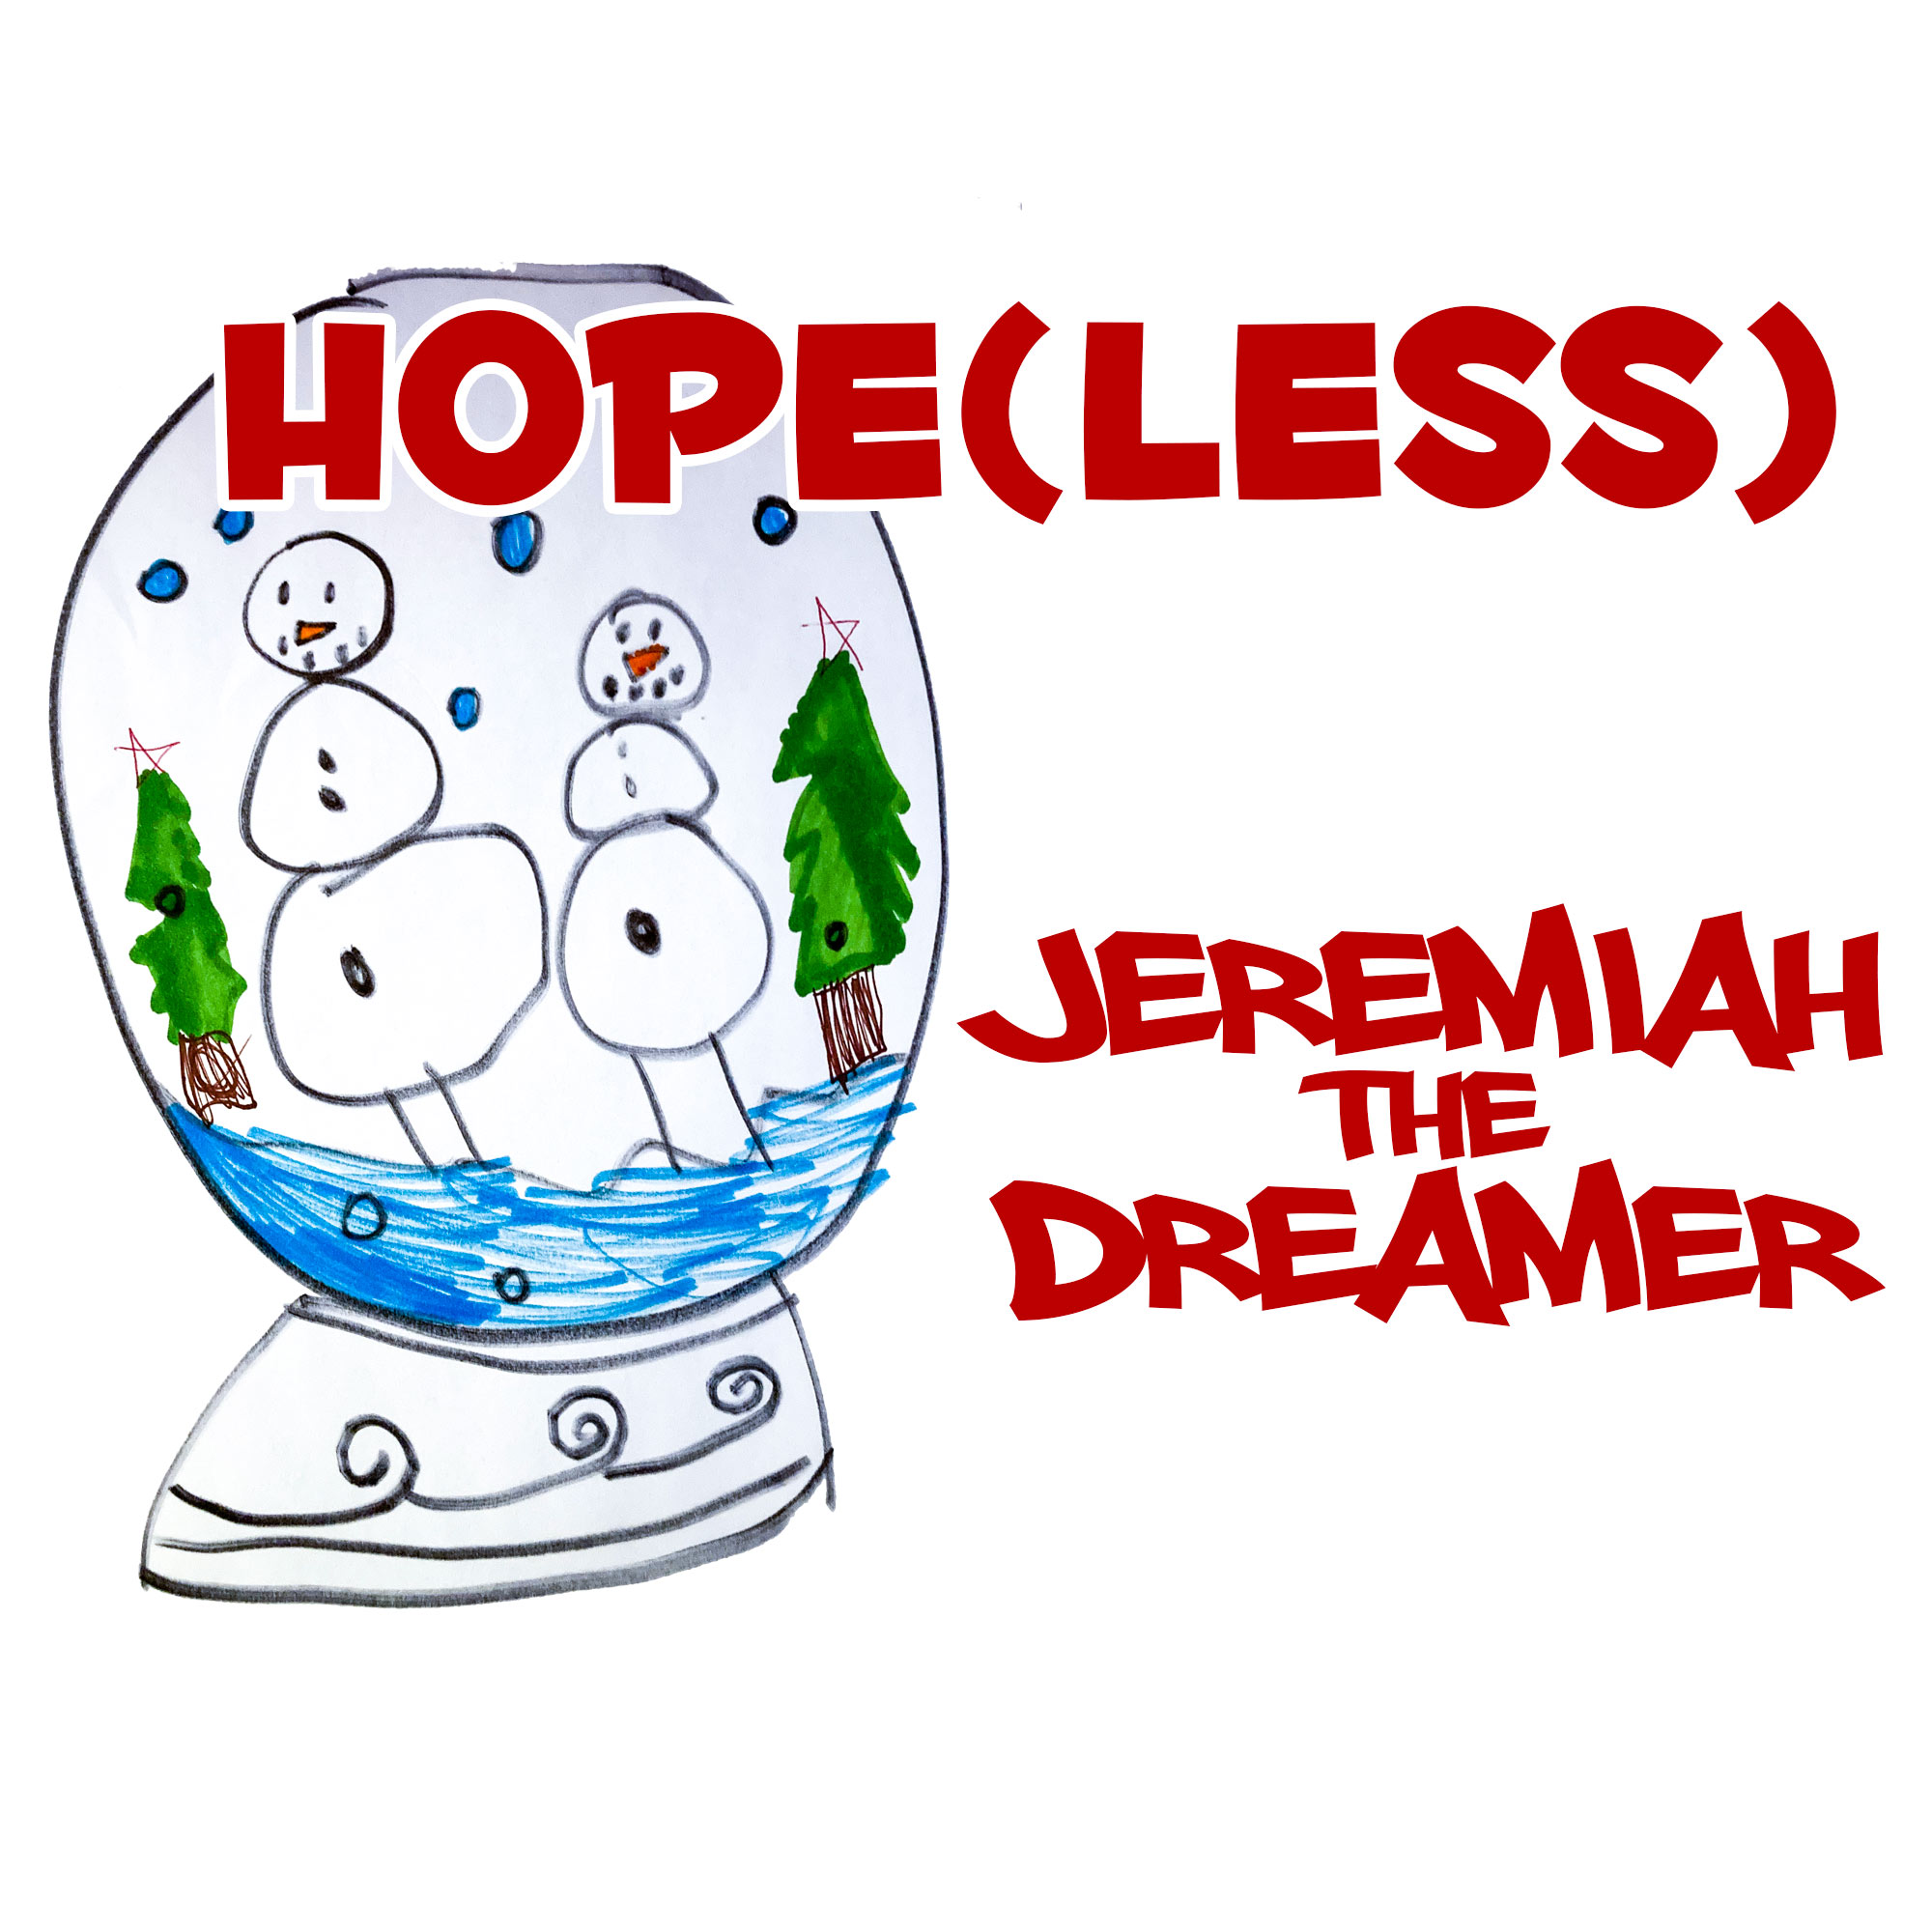 Hopeless by Jeremiah the Dreamer